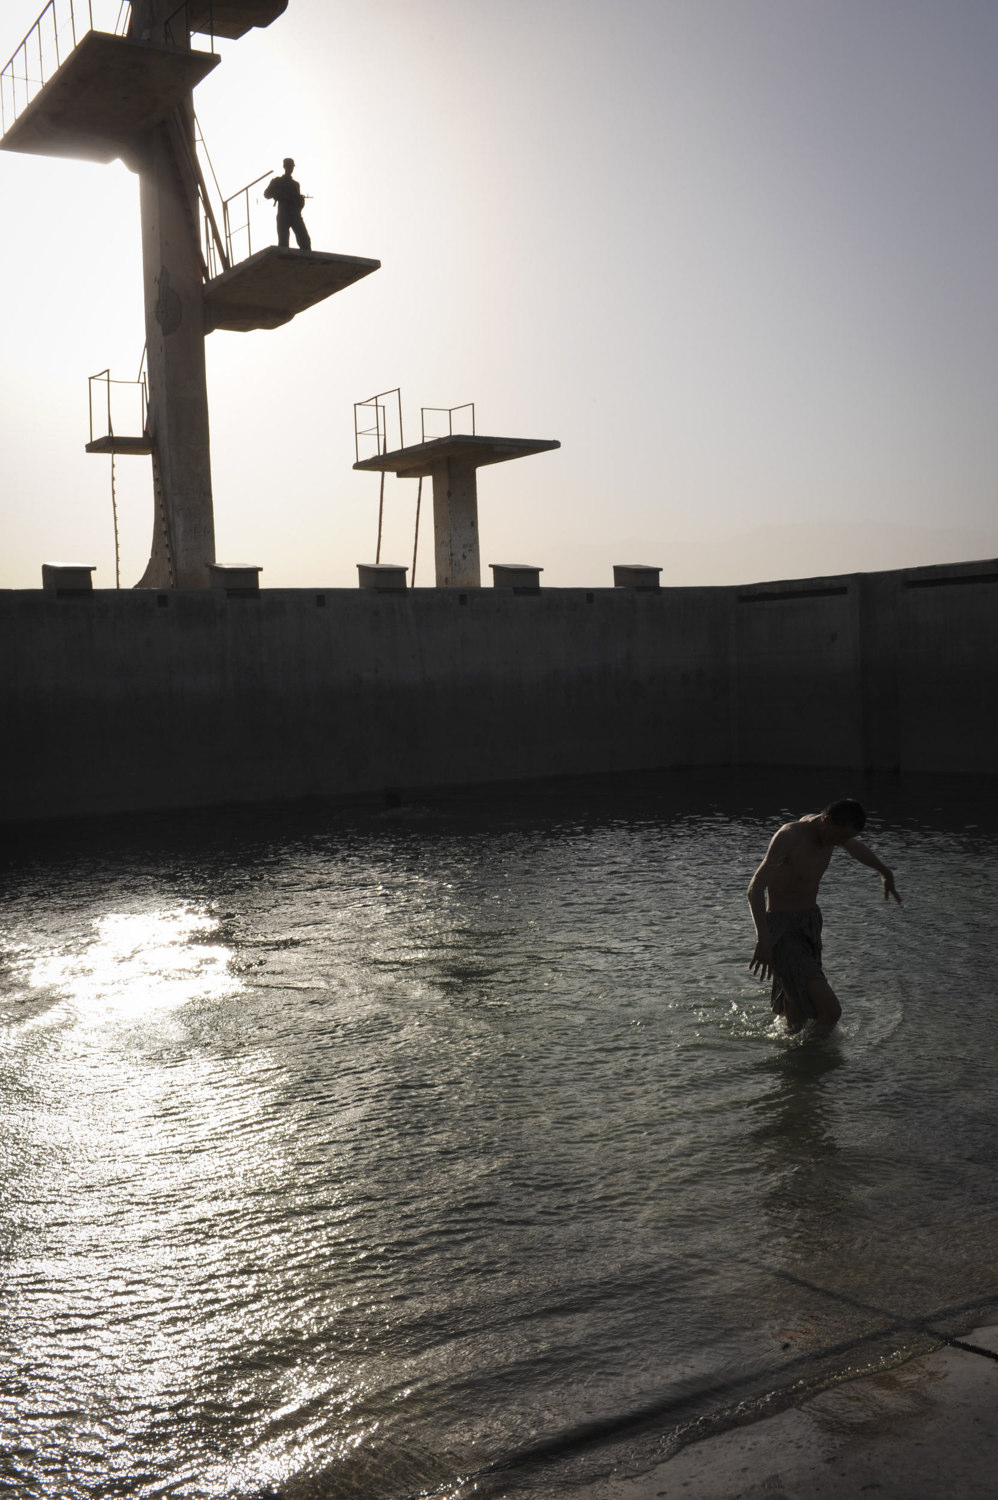 A man wades out of a pool while beign watched by an Afghan National Police man. Heightened security in Kabul the night before the election on Soviet Hill in Kabul Afghanistan, August 19th, 2009. The country later went on to elect incumbent president Hamid Karzai after months of debate over a tampered election.